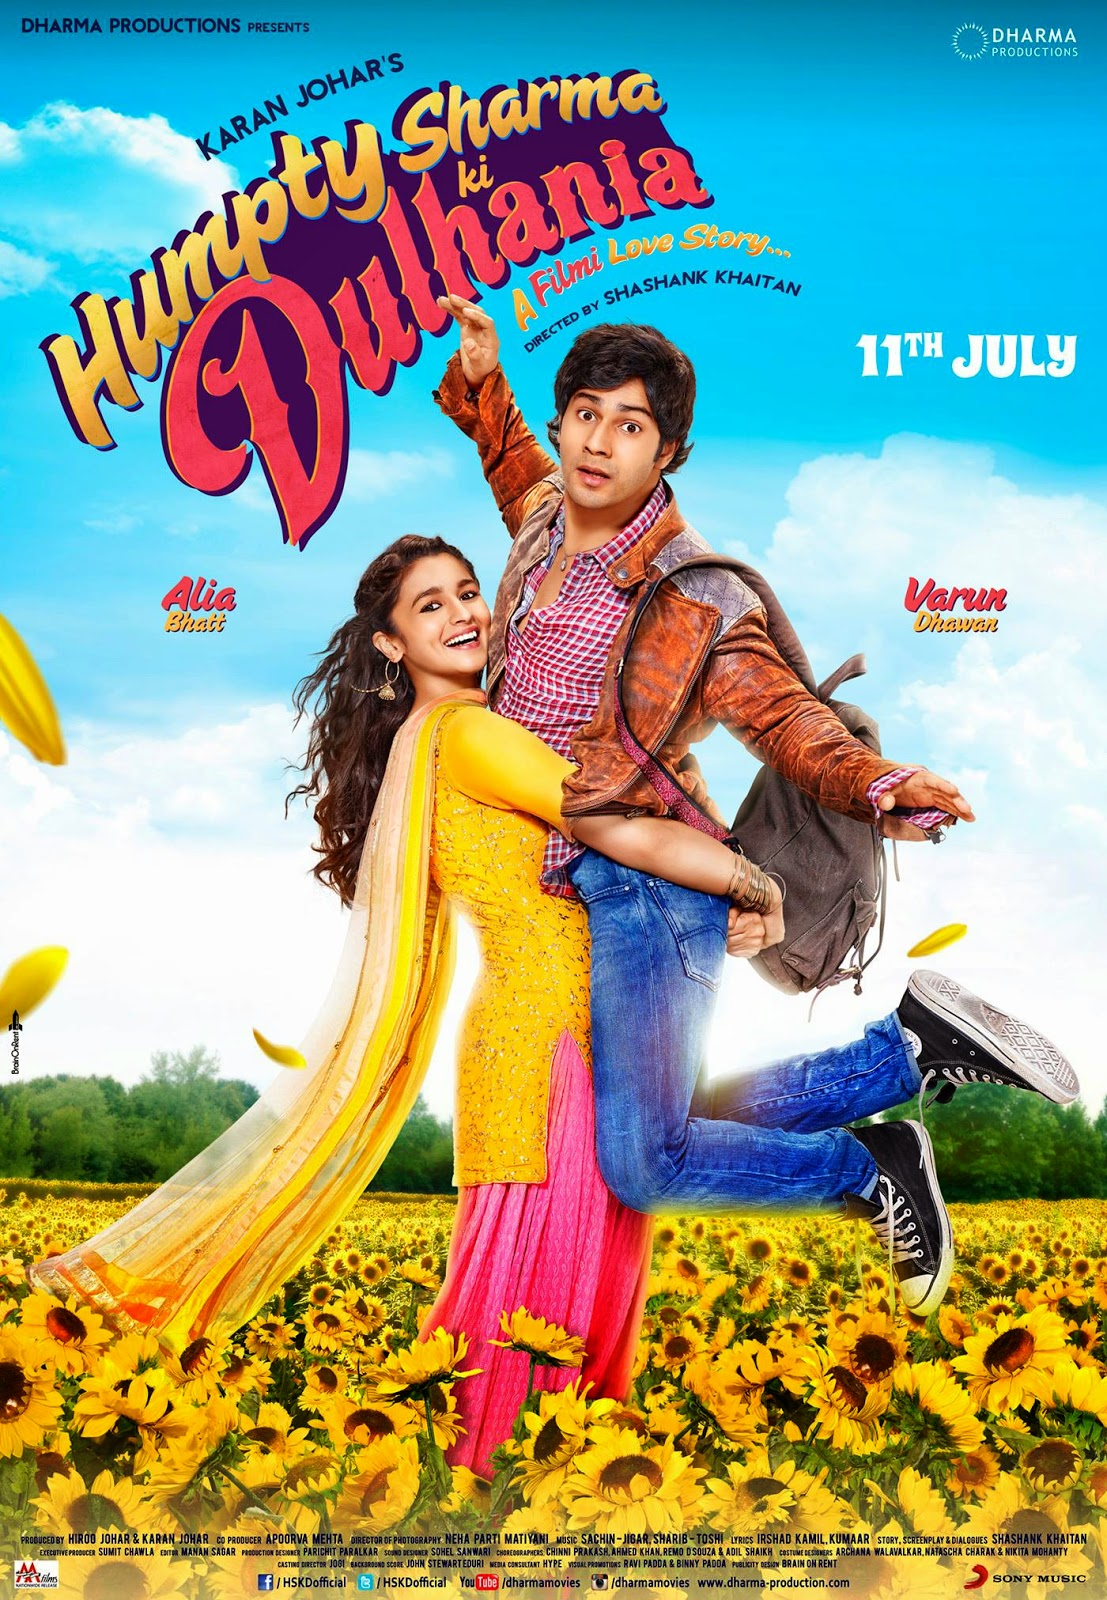 bollywood movie Humpty Sharma Ki Dulhania poster, varun dhawan, alia bhatt first look pics, wallpaper